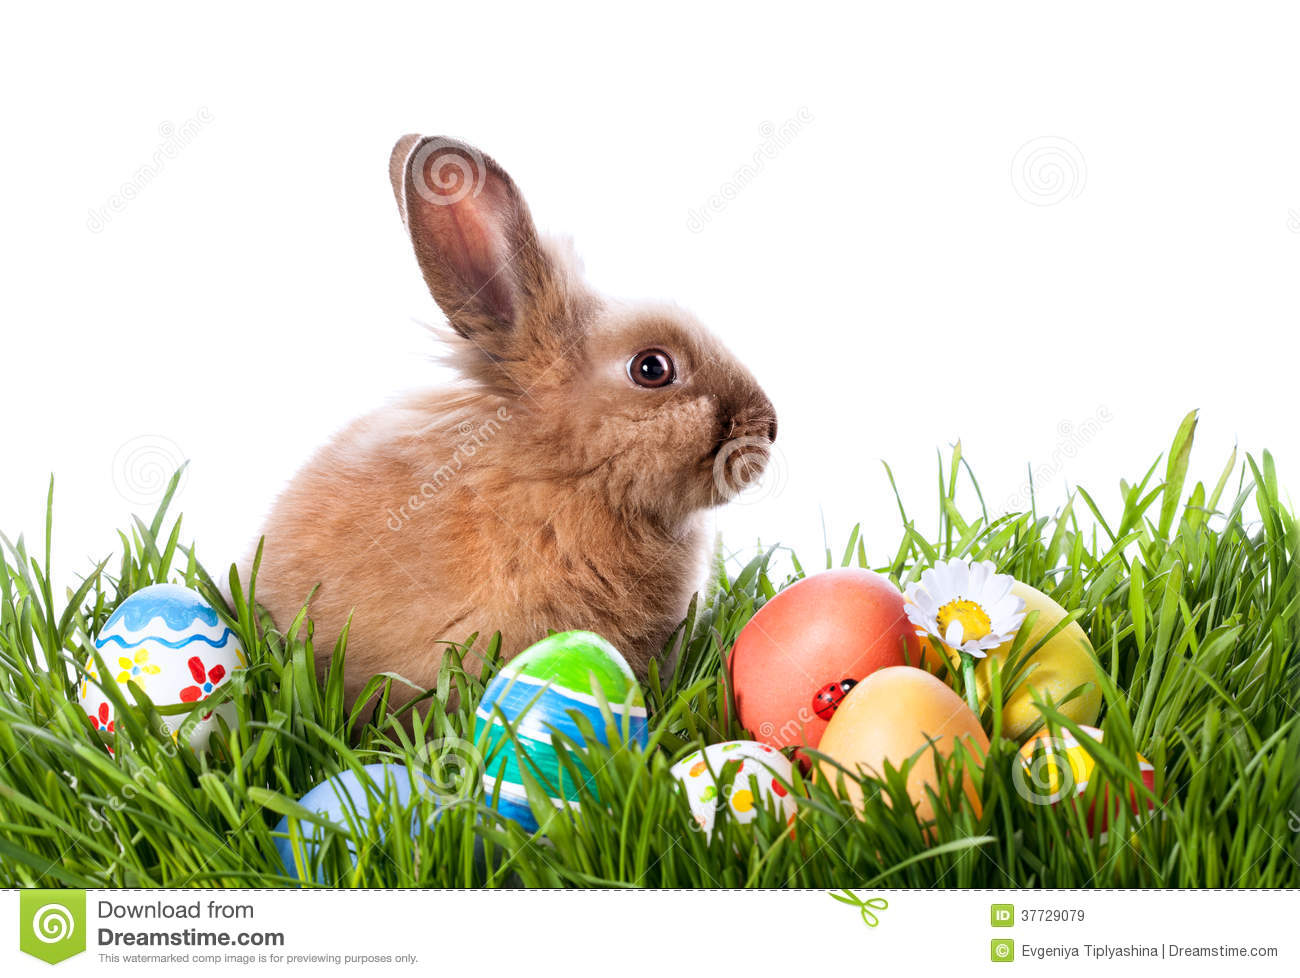 Images of Easter Bunny And Eggs - The Miracle of Easter